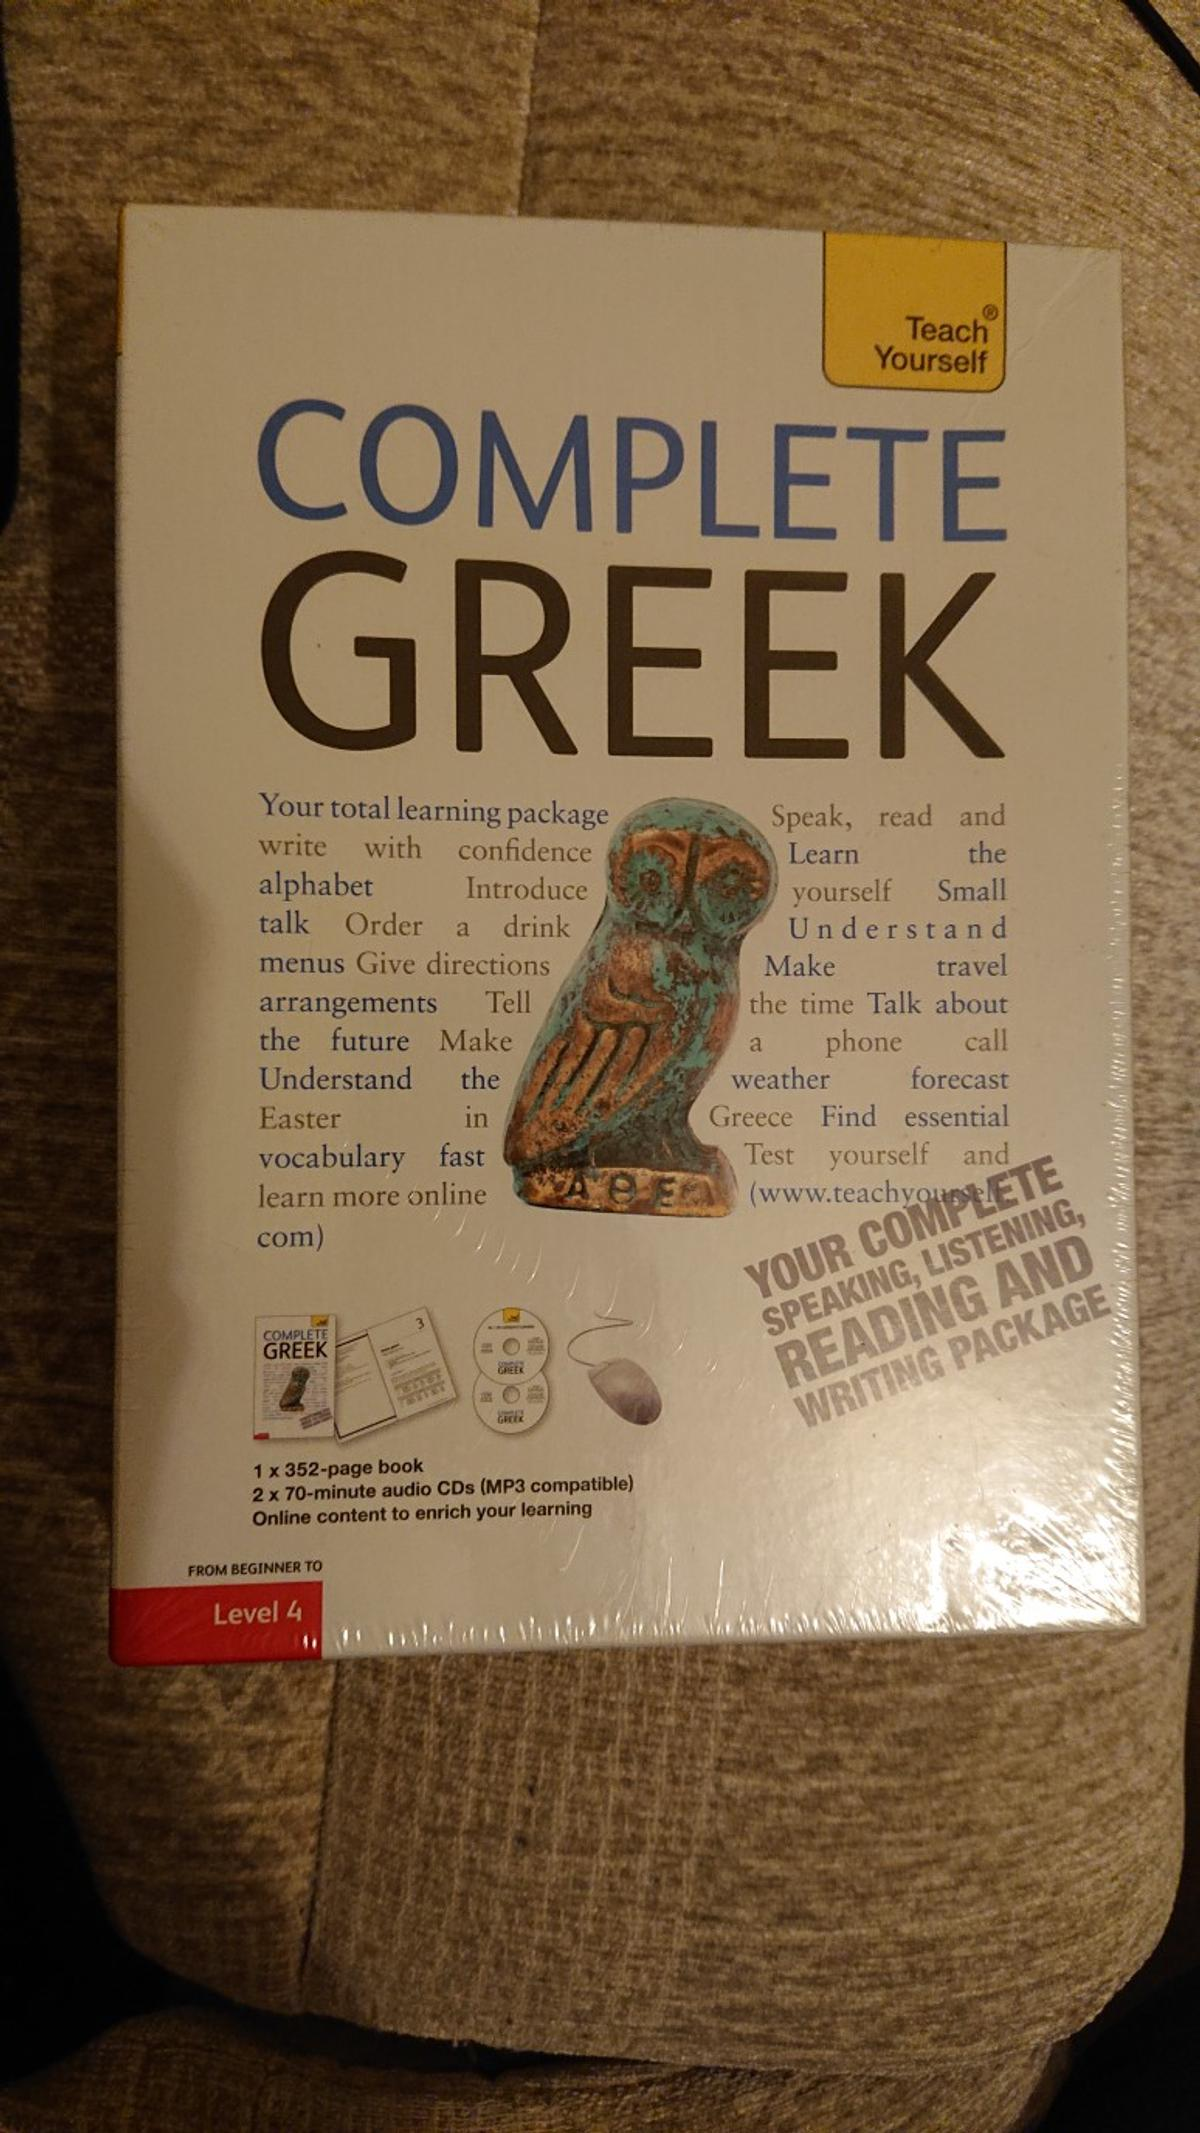 Teach yourself Greek package